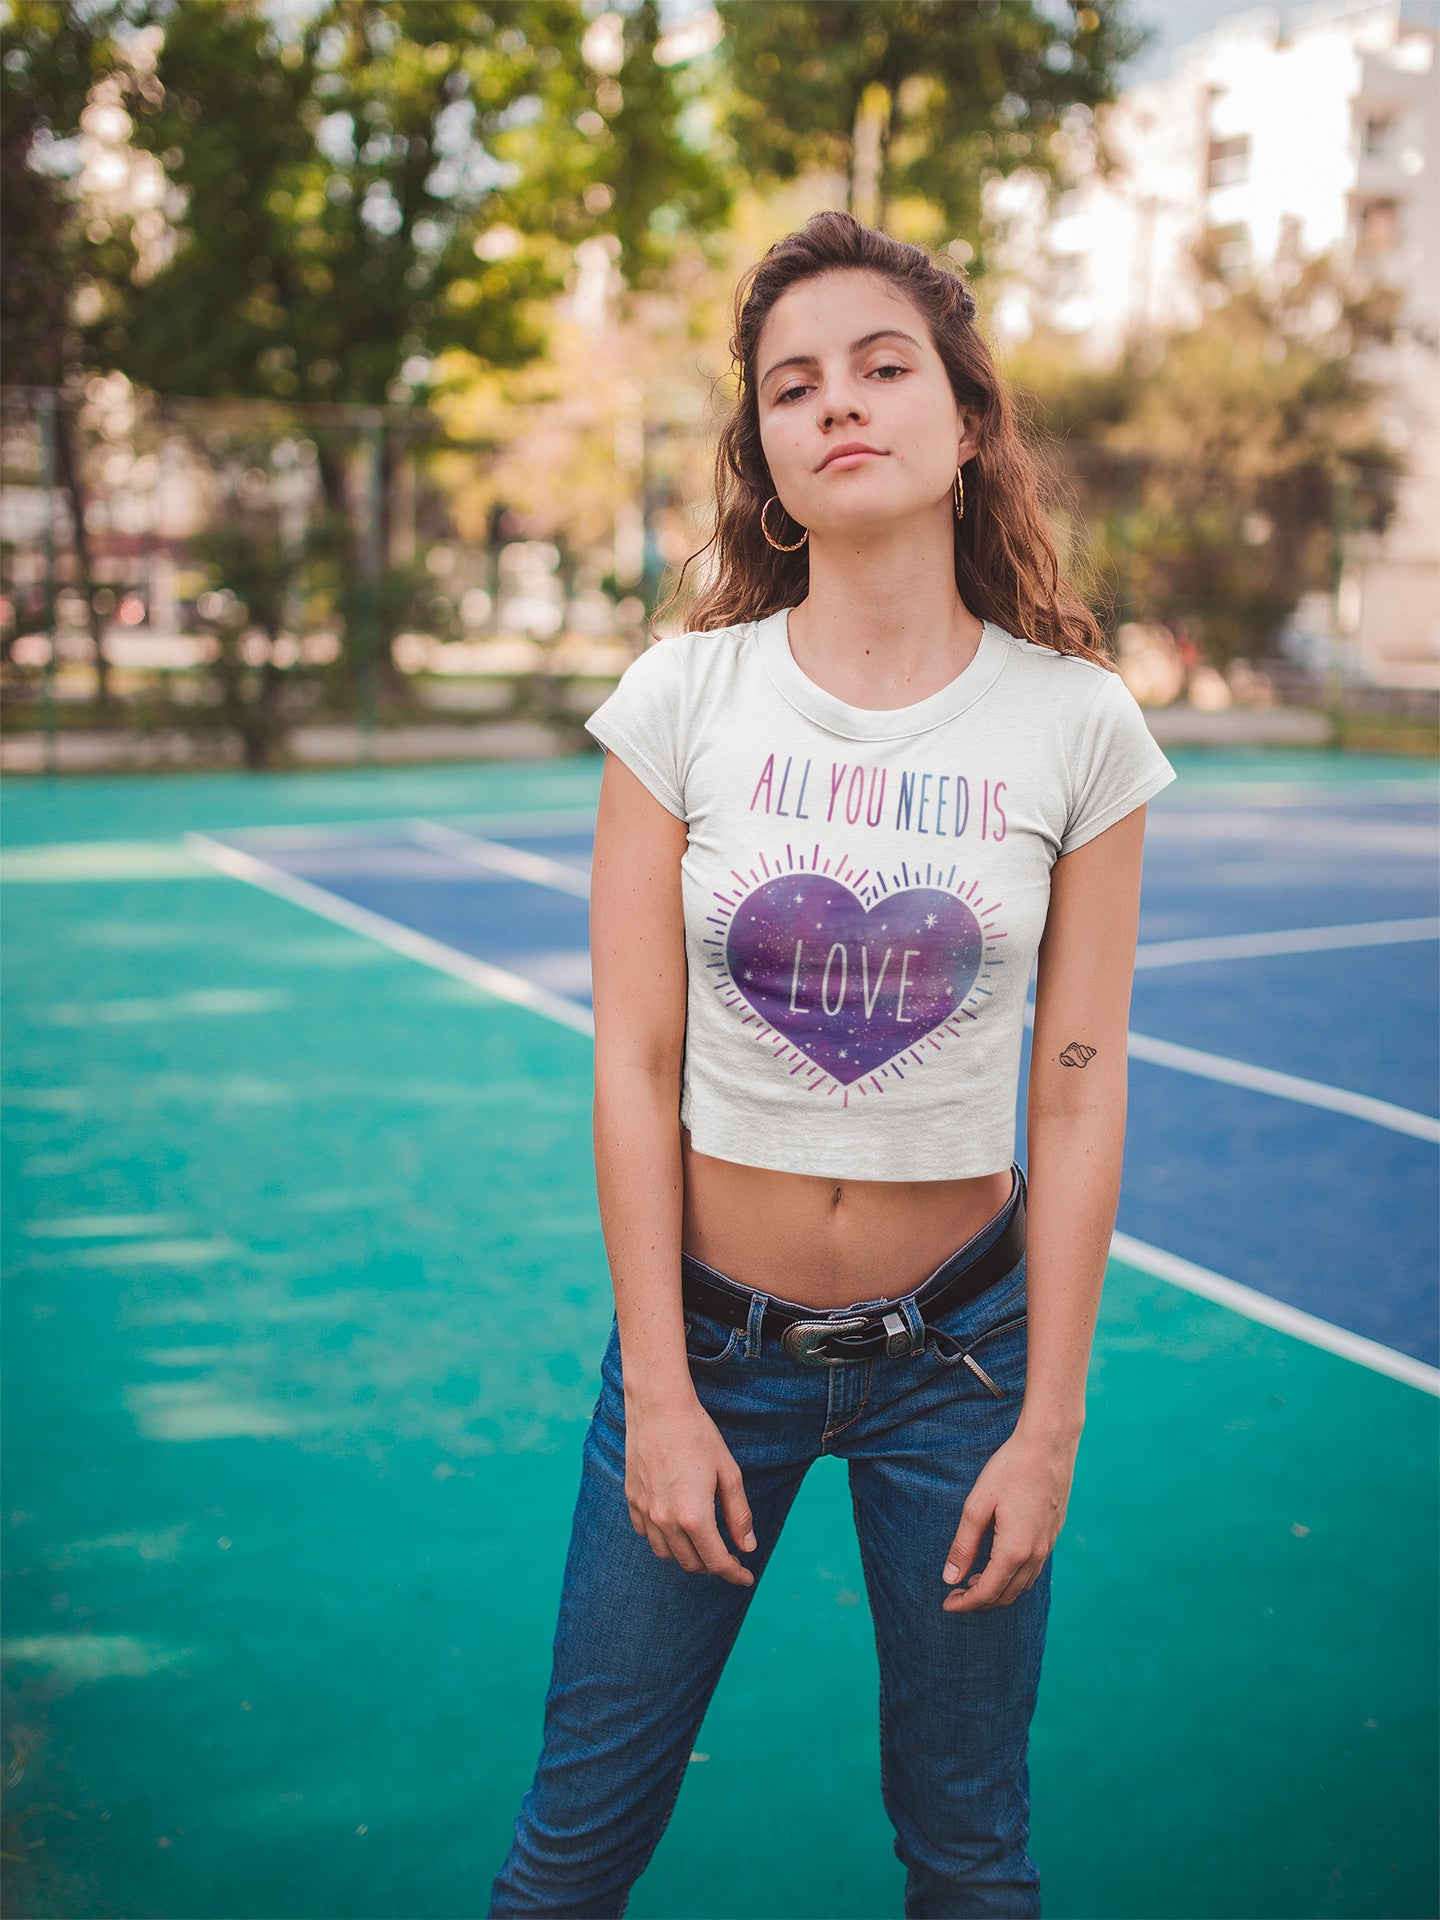 All you need is love crop top